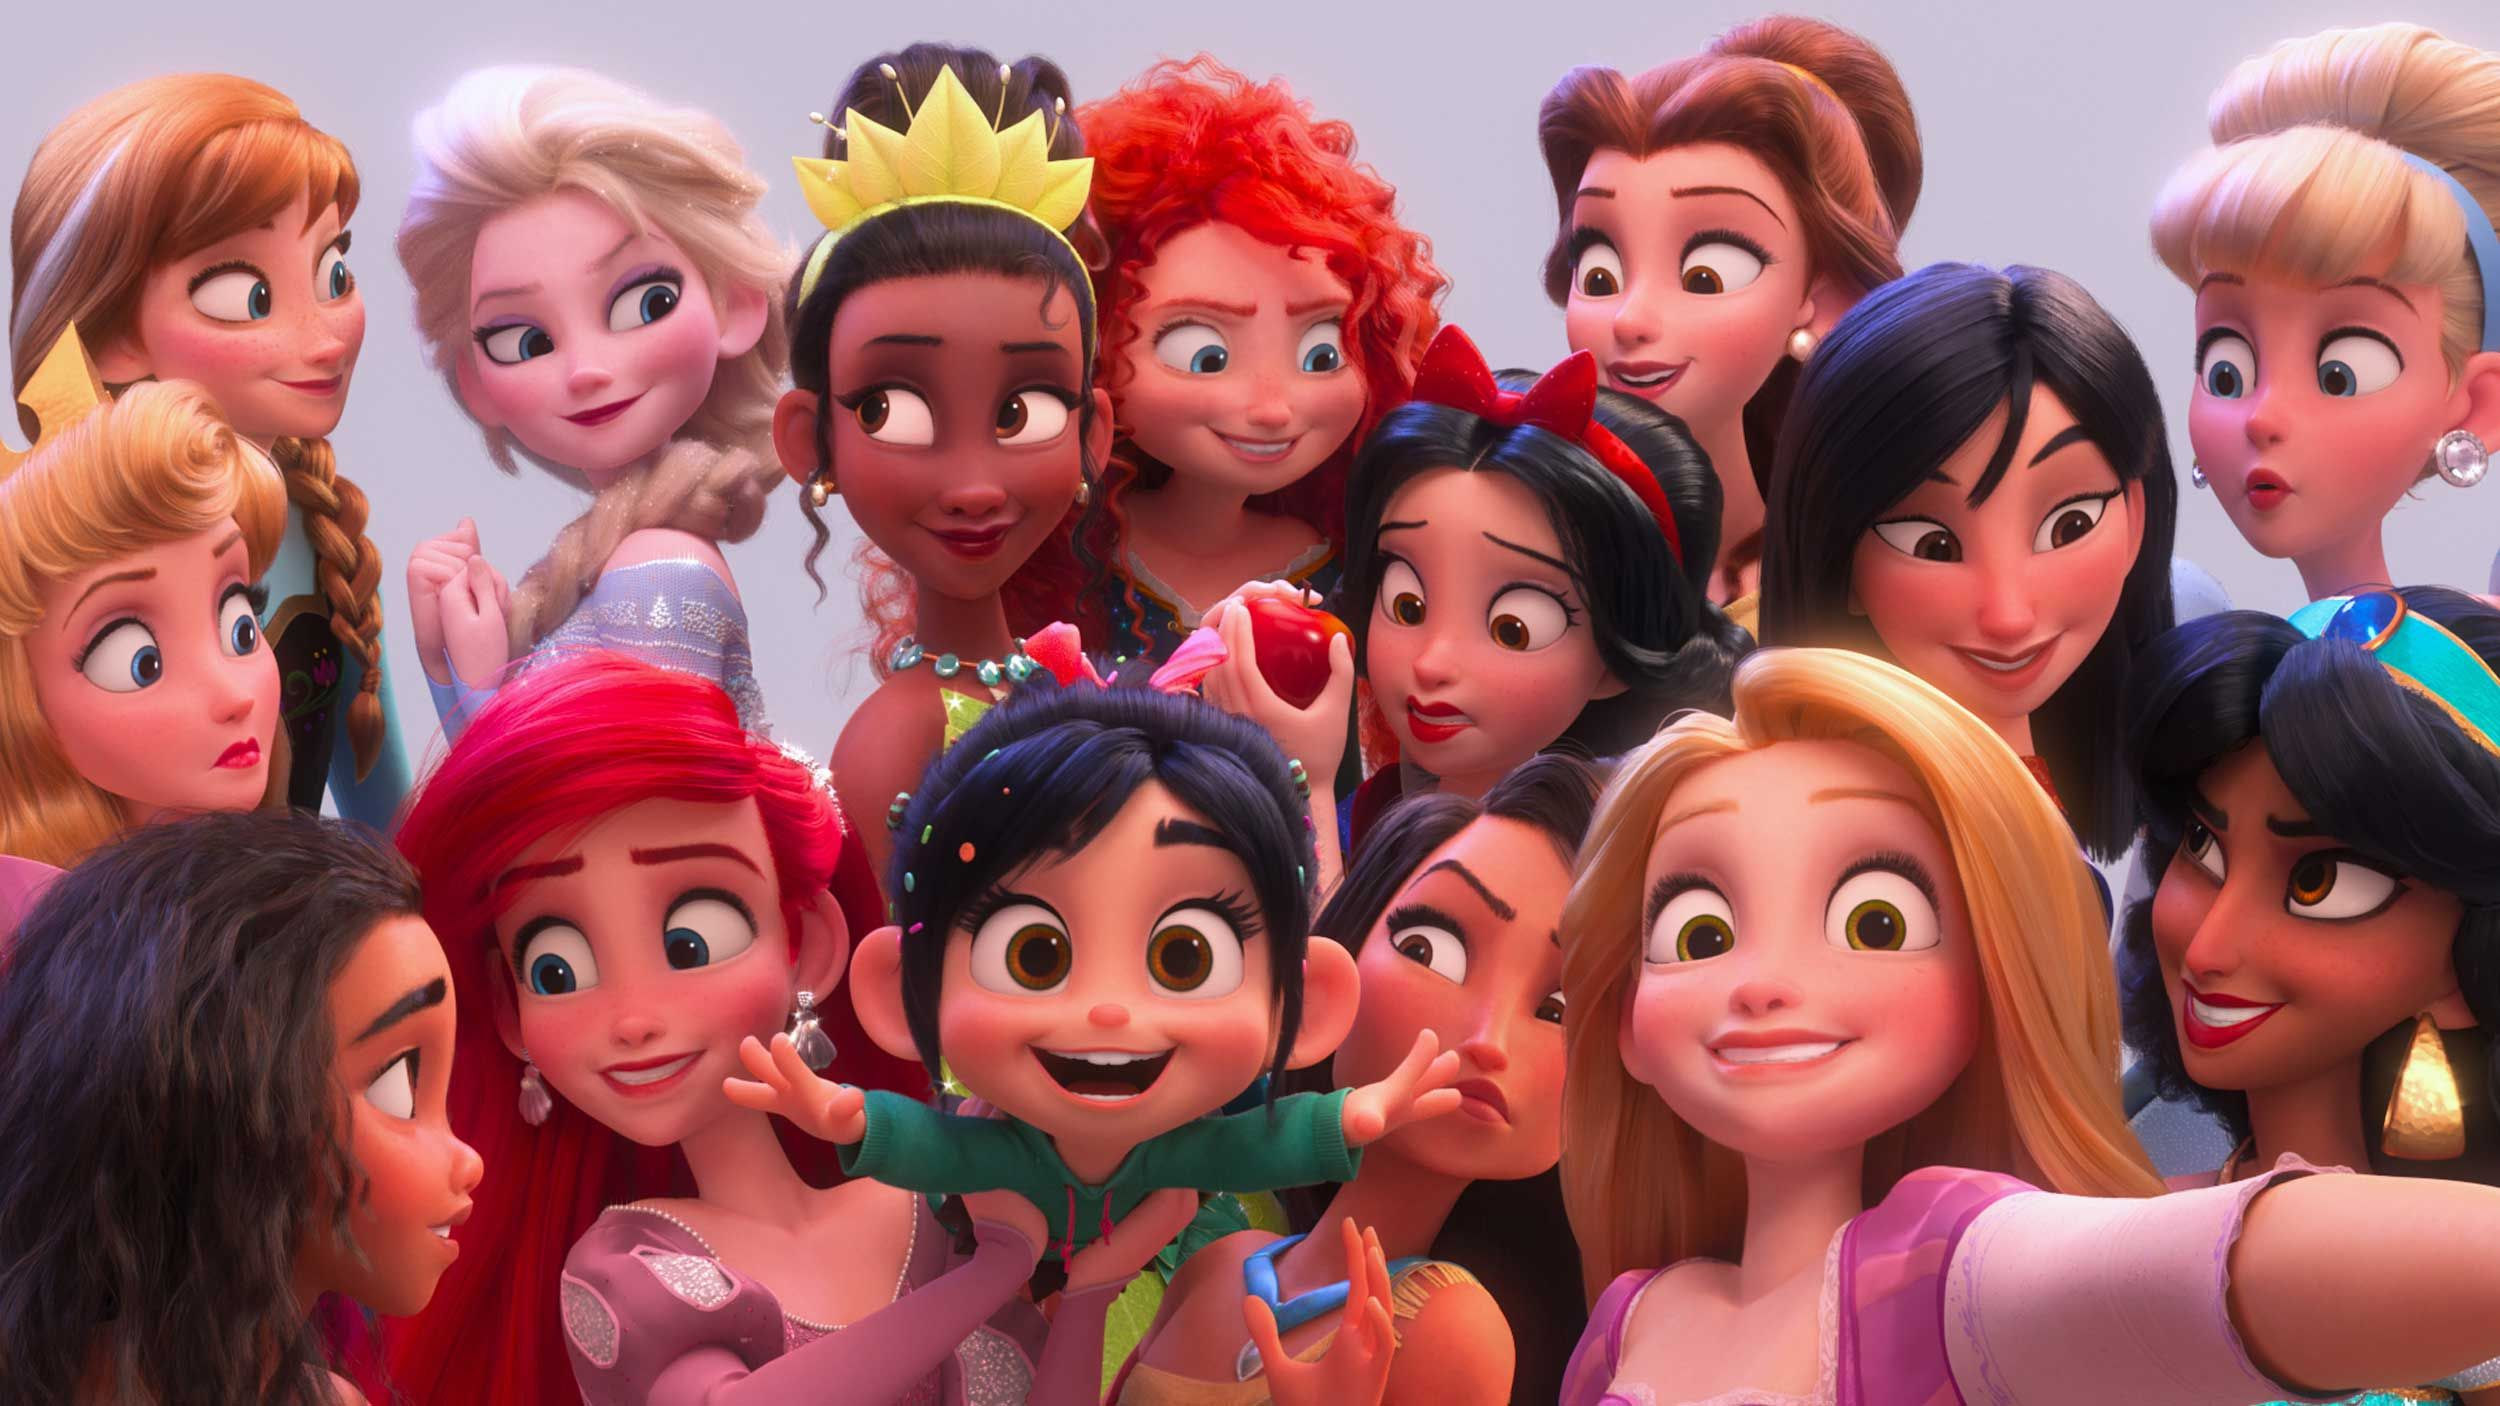 """Wreck-It Ralph 2 stars hail Disney as """"brave"""" for challenging """"problematic""""  princess stereotypes"""